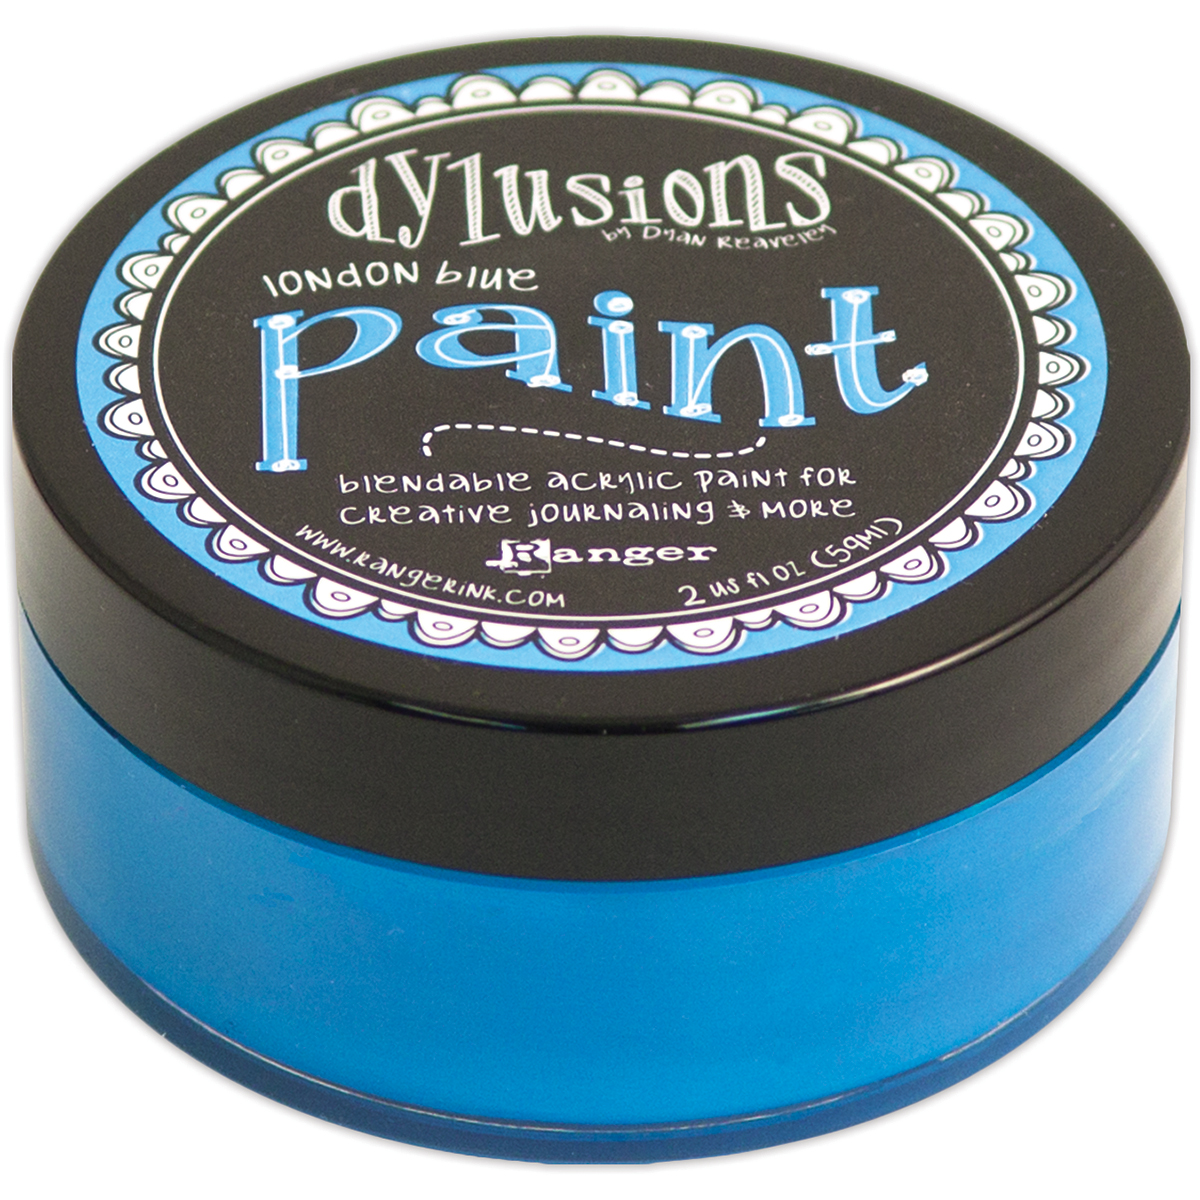 Dylusions By Dyan Reaveley Blendable Acrylic Paint 2oz-London Blue